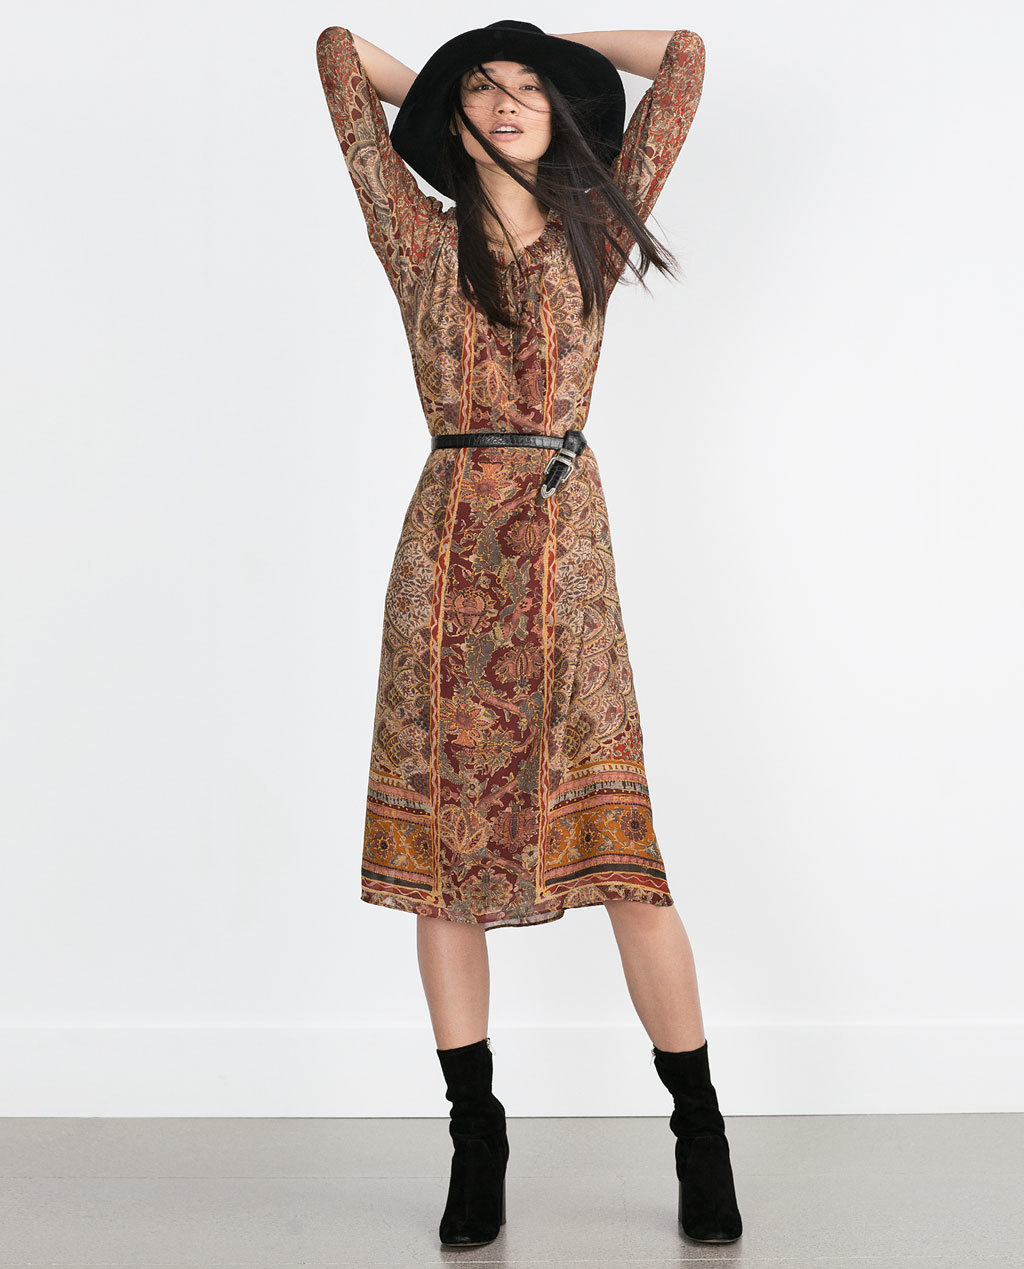 Long Patterned Dress - style: shift; length: below the knee; pattern: paisley; waist detail: belted waist/tie at waist/drawstring; secondary colour: terracotta; predominant colour: camel; occasions: casual, creative work; fit: fitted at waist & bust; neckline: crew; hip detail: subtle/flattering hip detail; sleeve length: 3/4 length; sleeve style: standard; pattern type: fabric; texture group: other - light to midweight; season: a/w 2015; trends: folky 70s; wardrobe: highlight